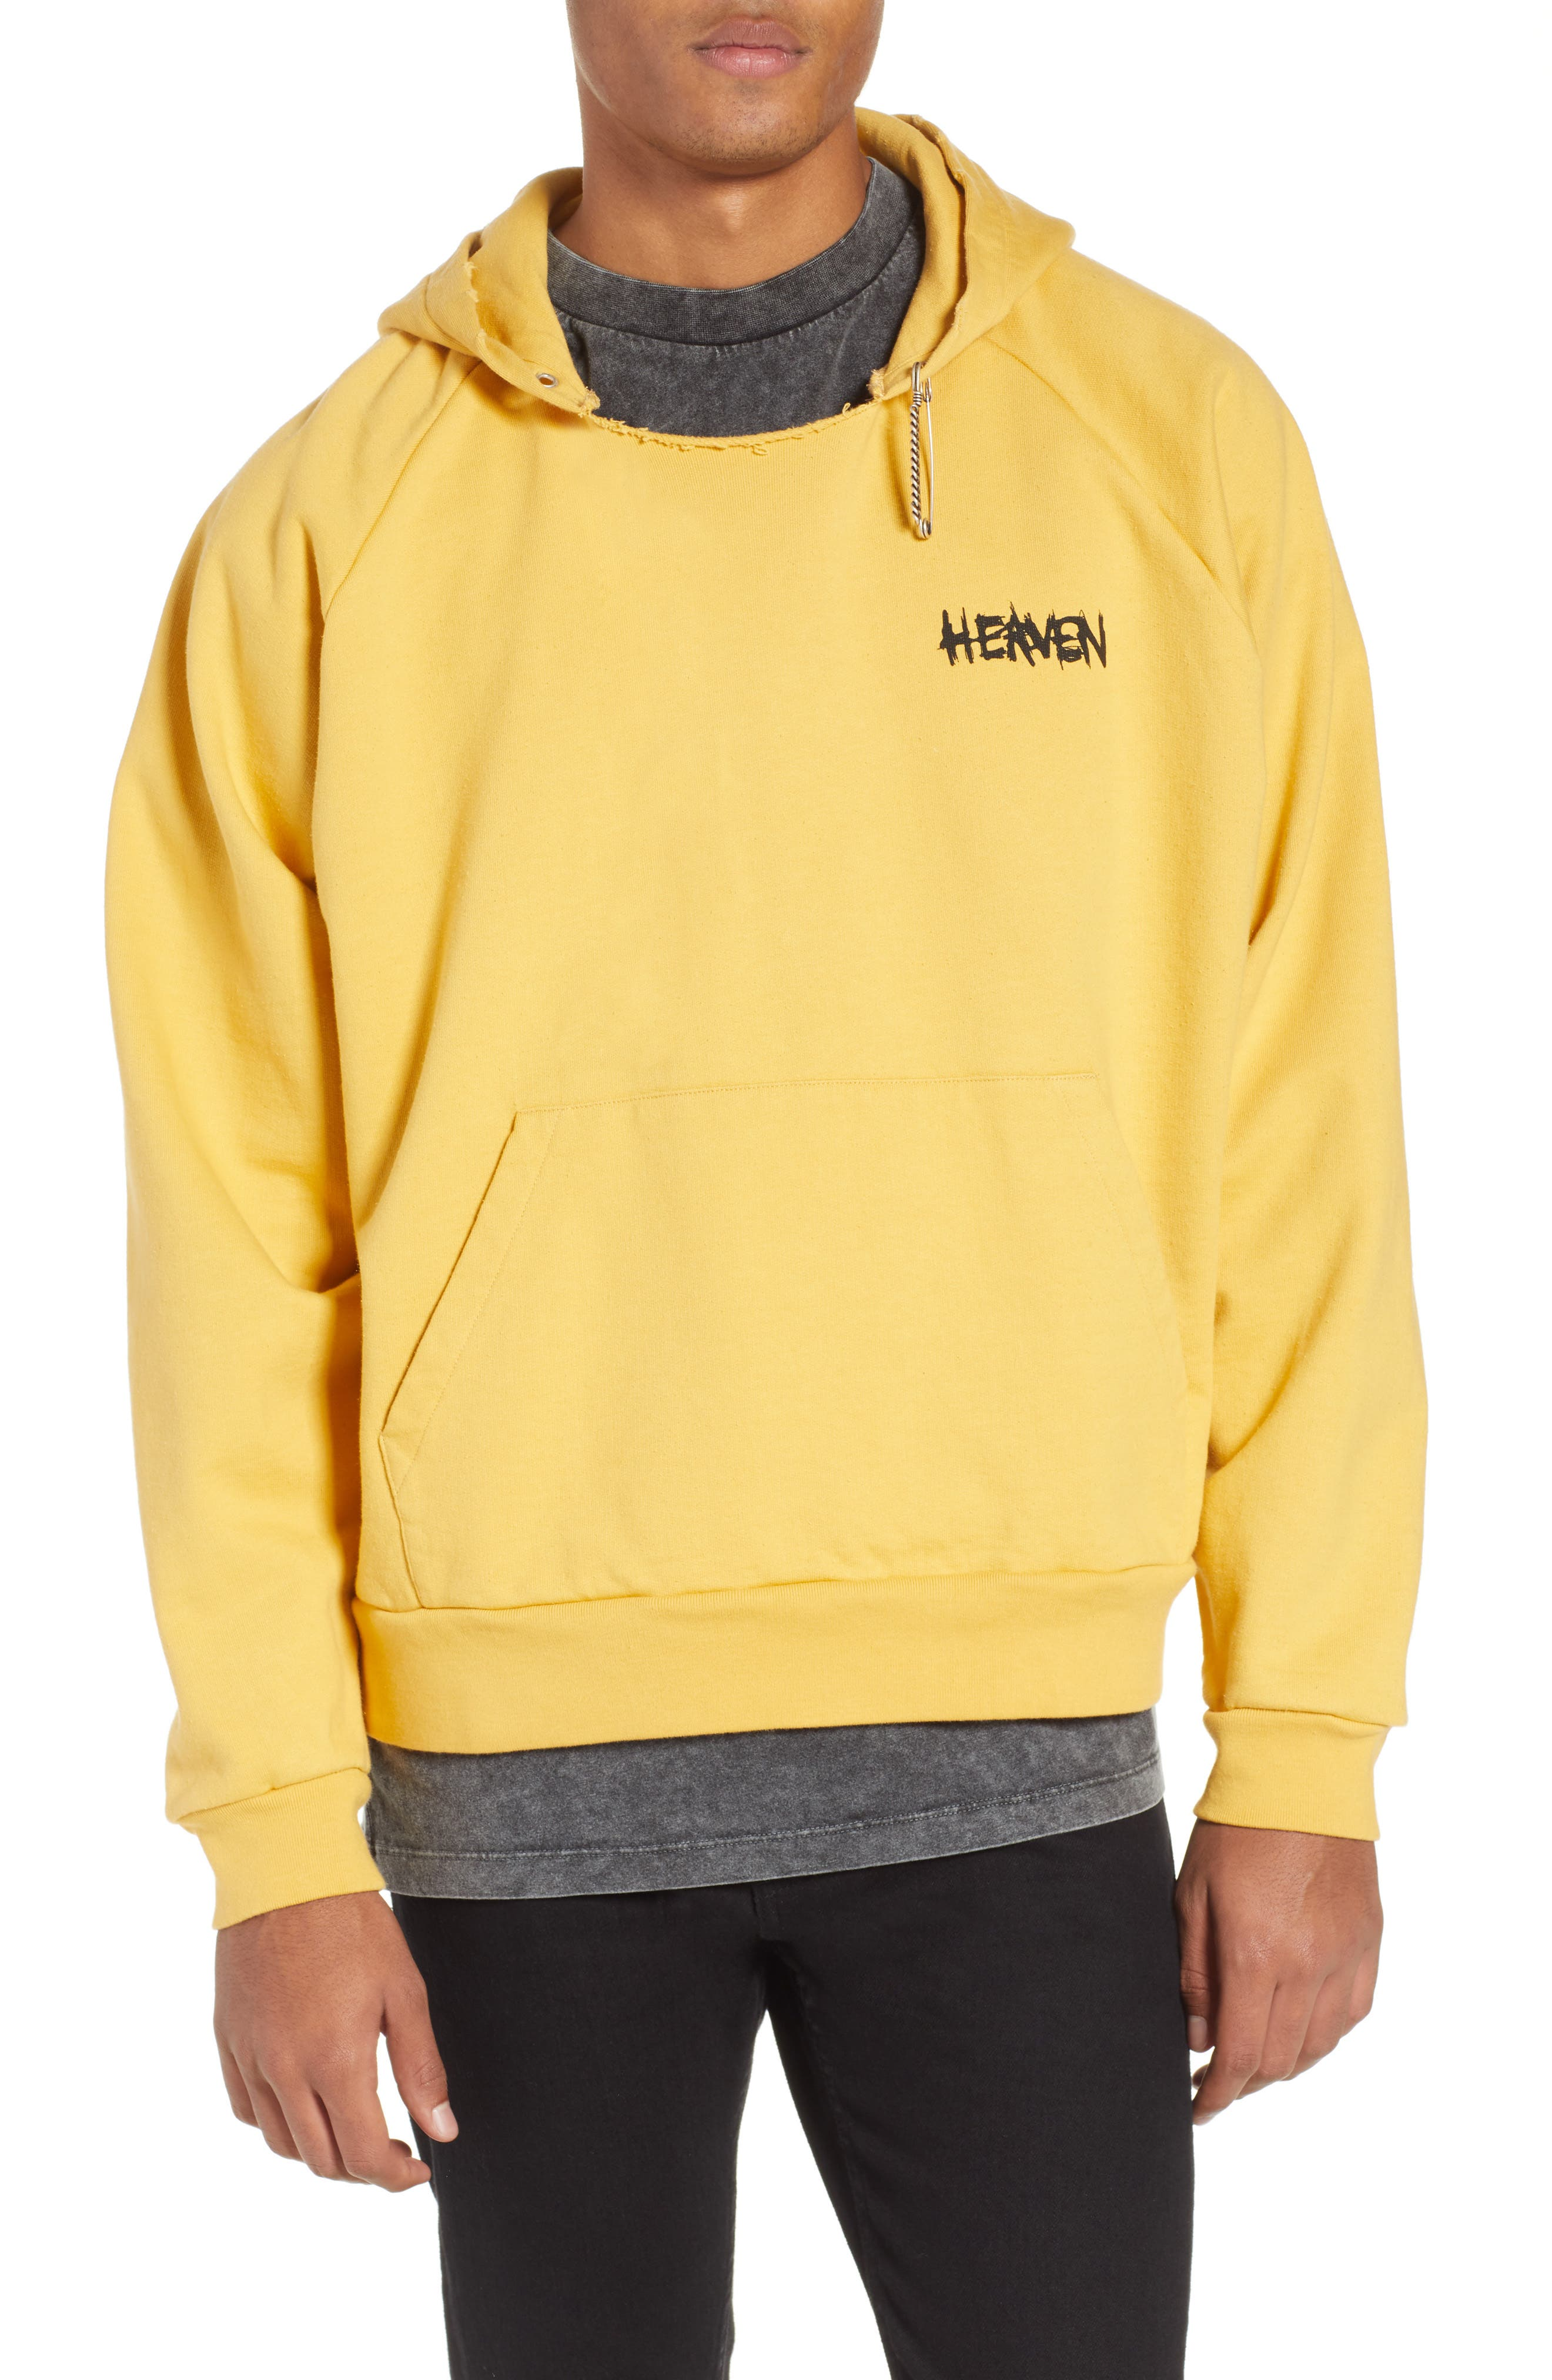 THE KOOPLES, Oversize Hoodie, Main thumbnail 1, color, YELLOW